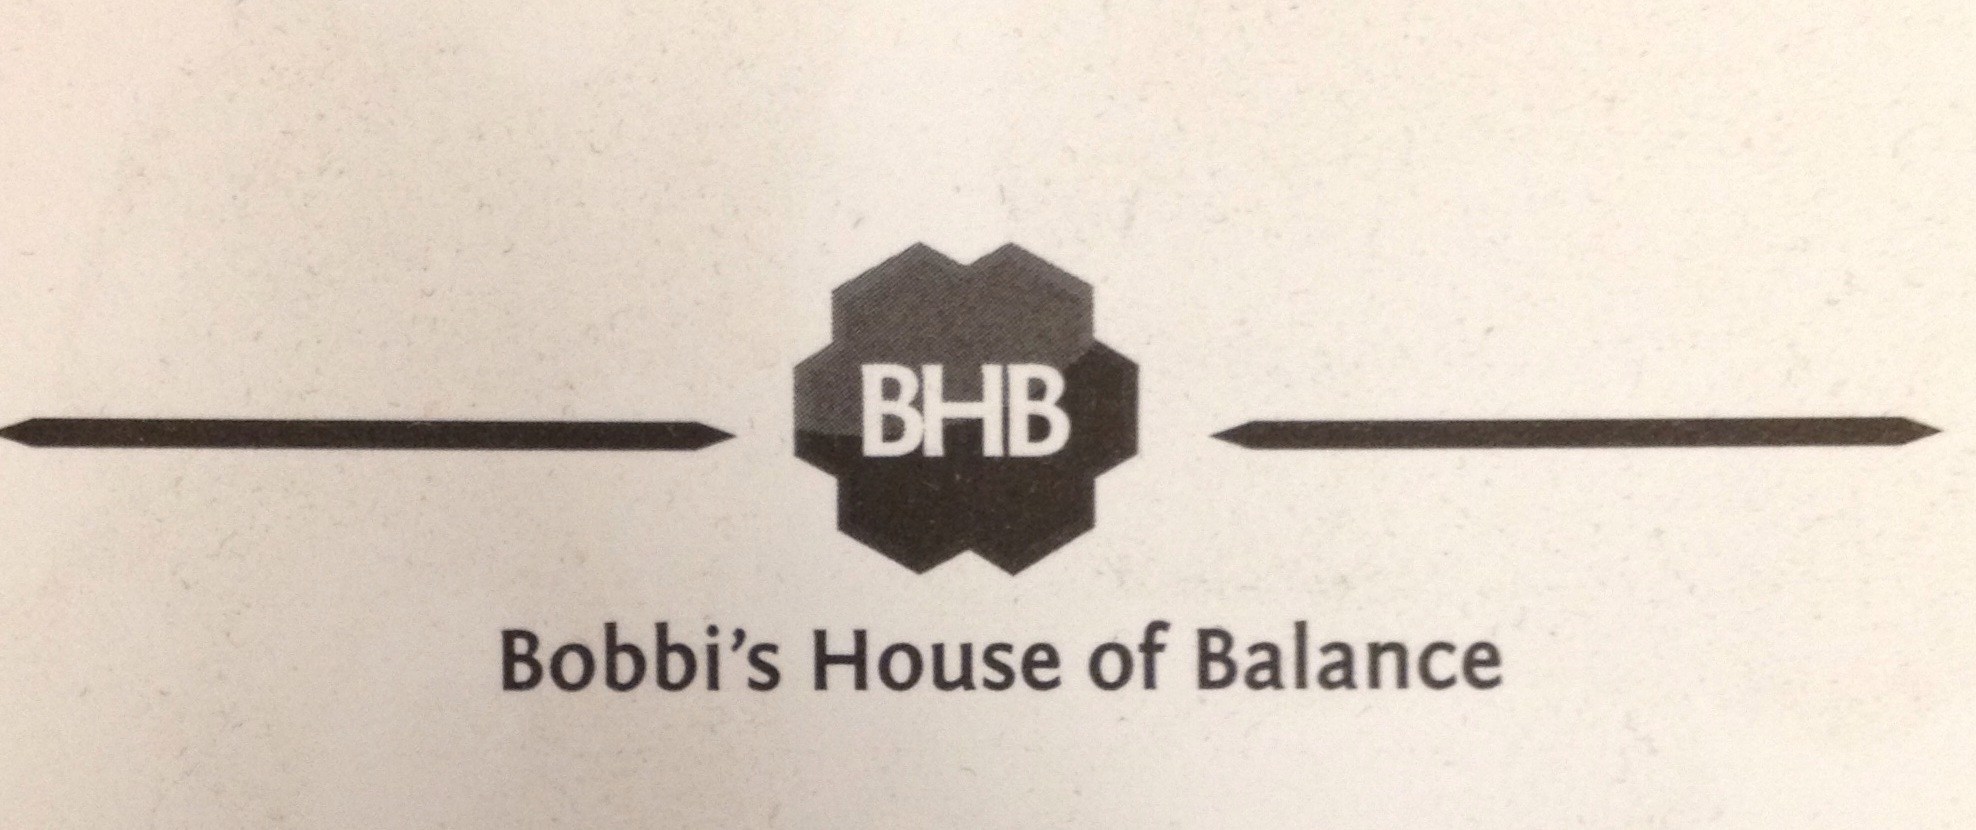 25-dollars-for-a-half-hour-personal-training-at-bobbis-house-of-balance